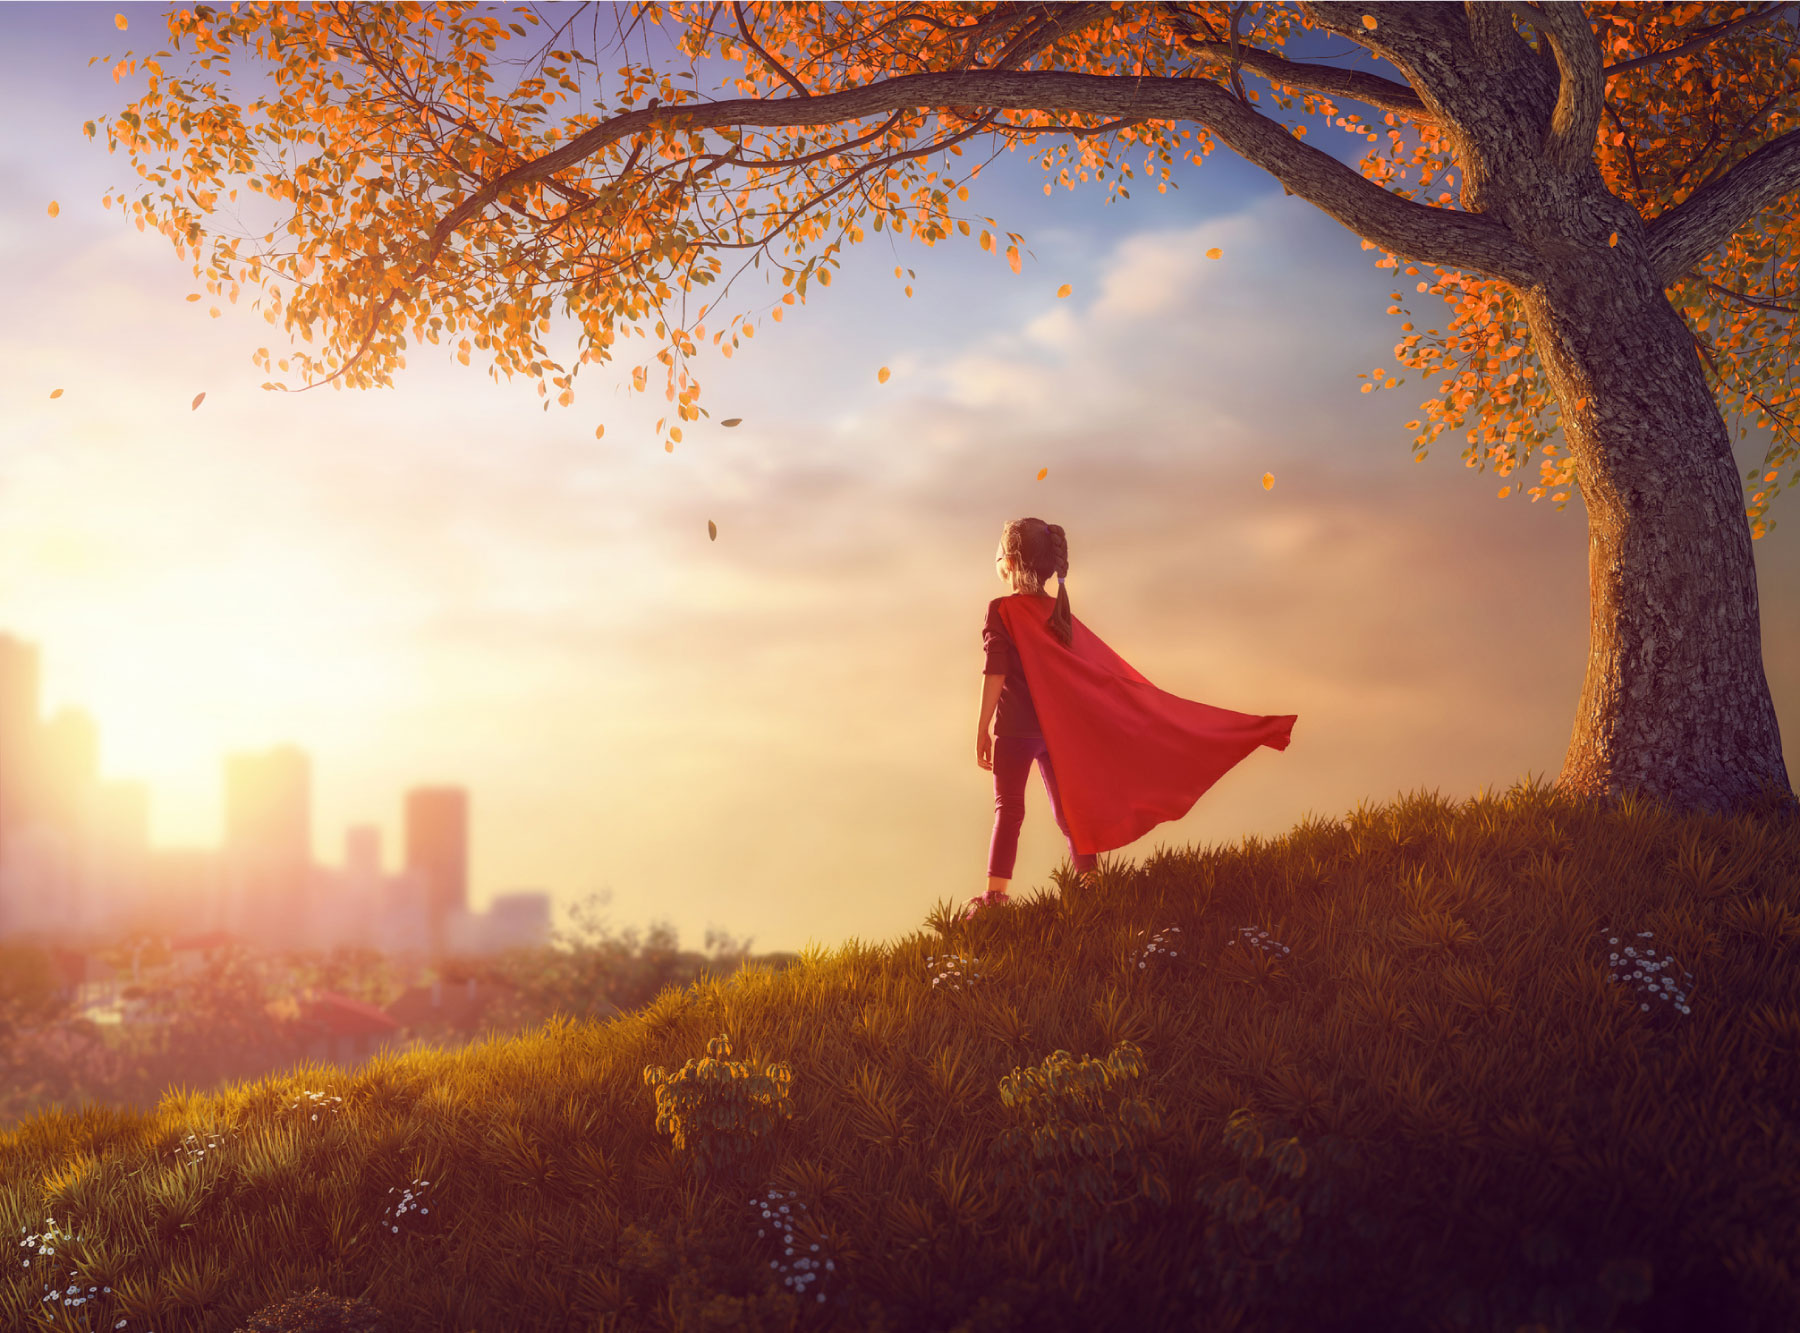 girl in superhero outfit looking out at cityscape, dreaming